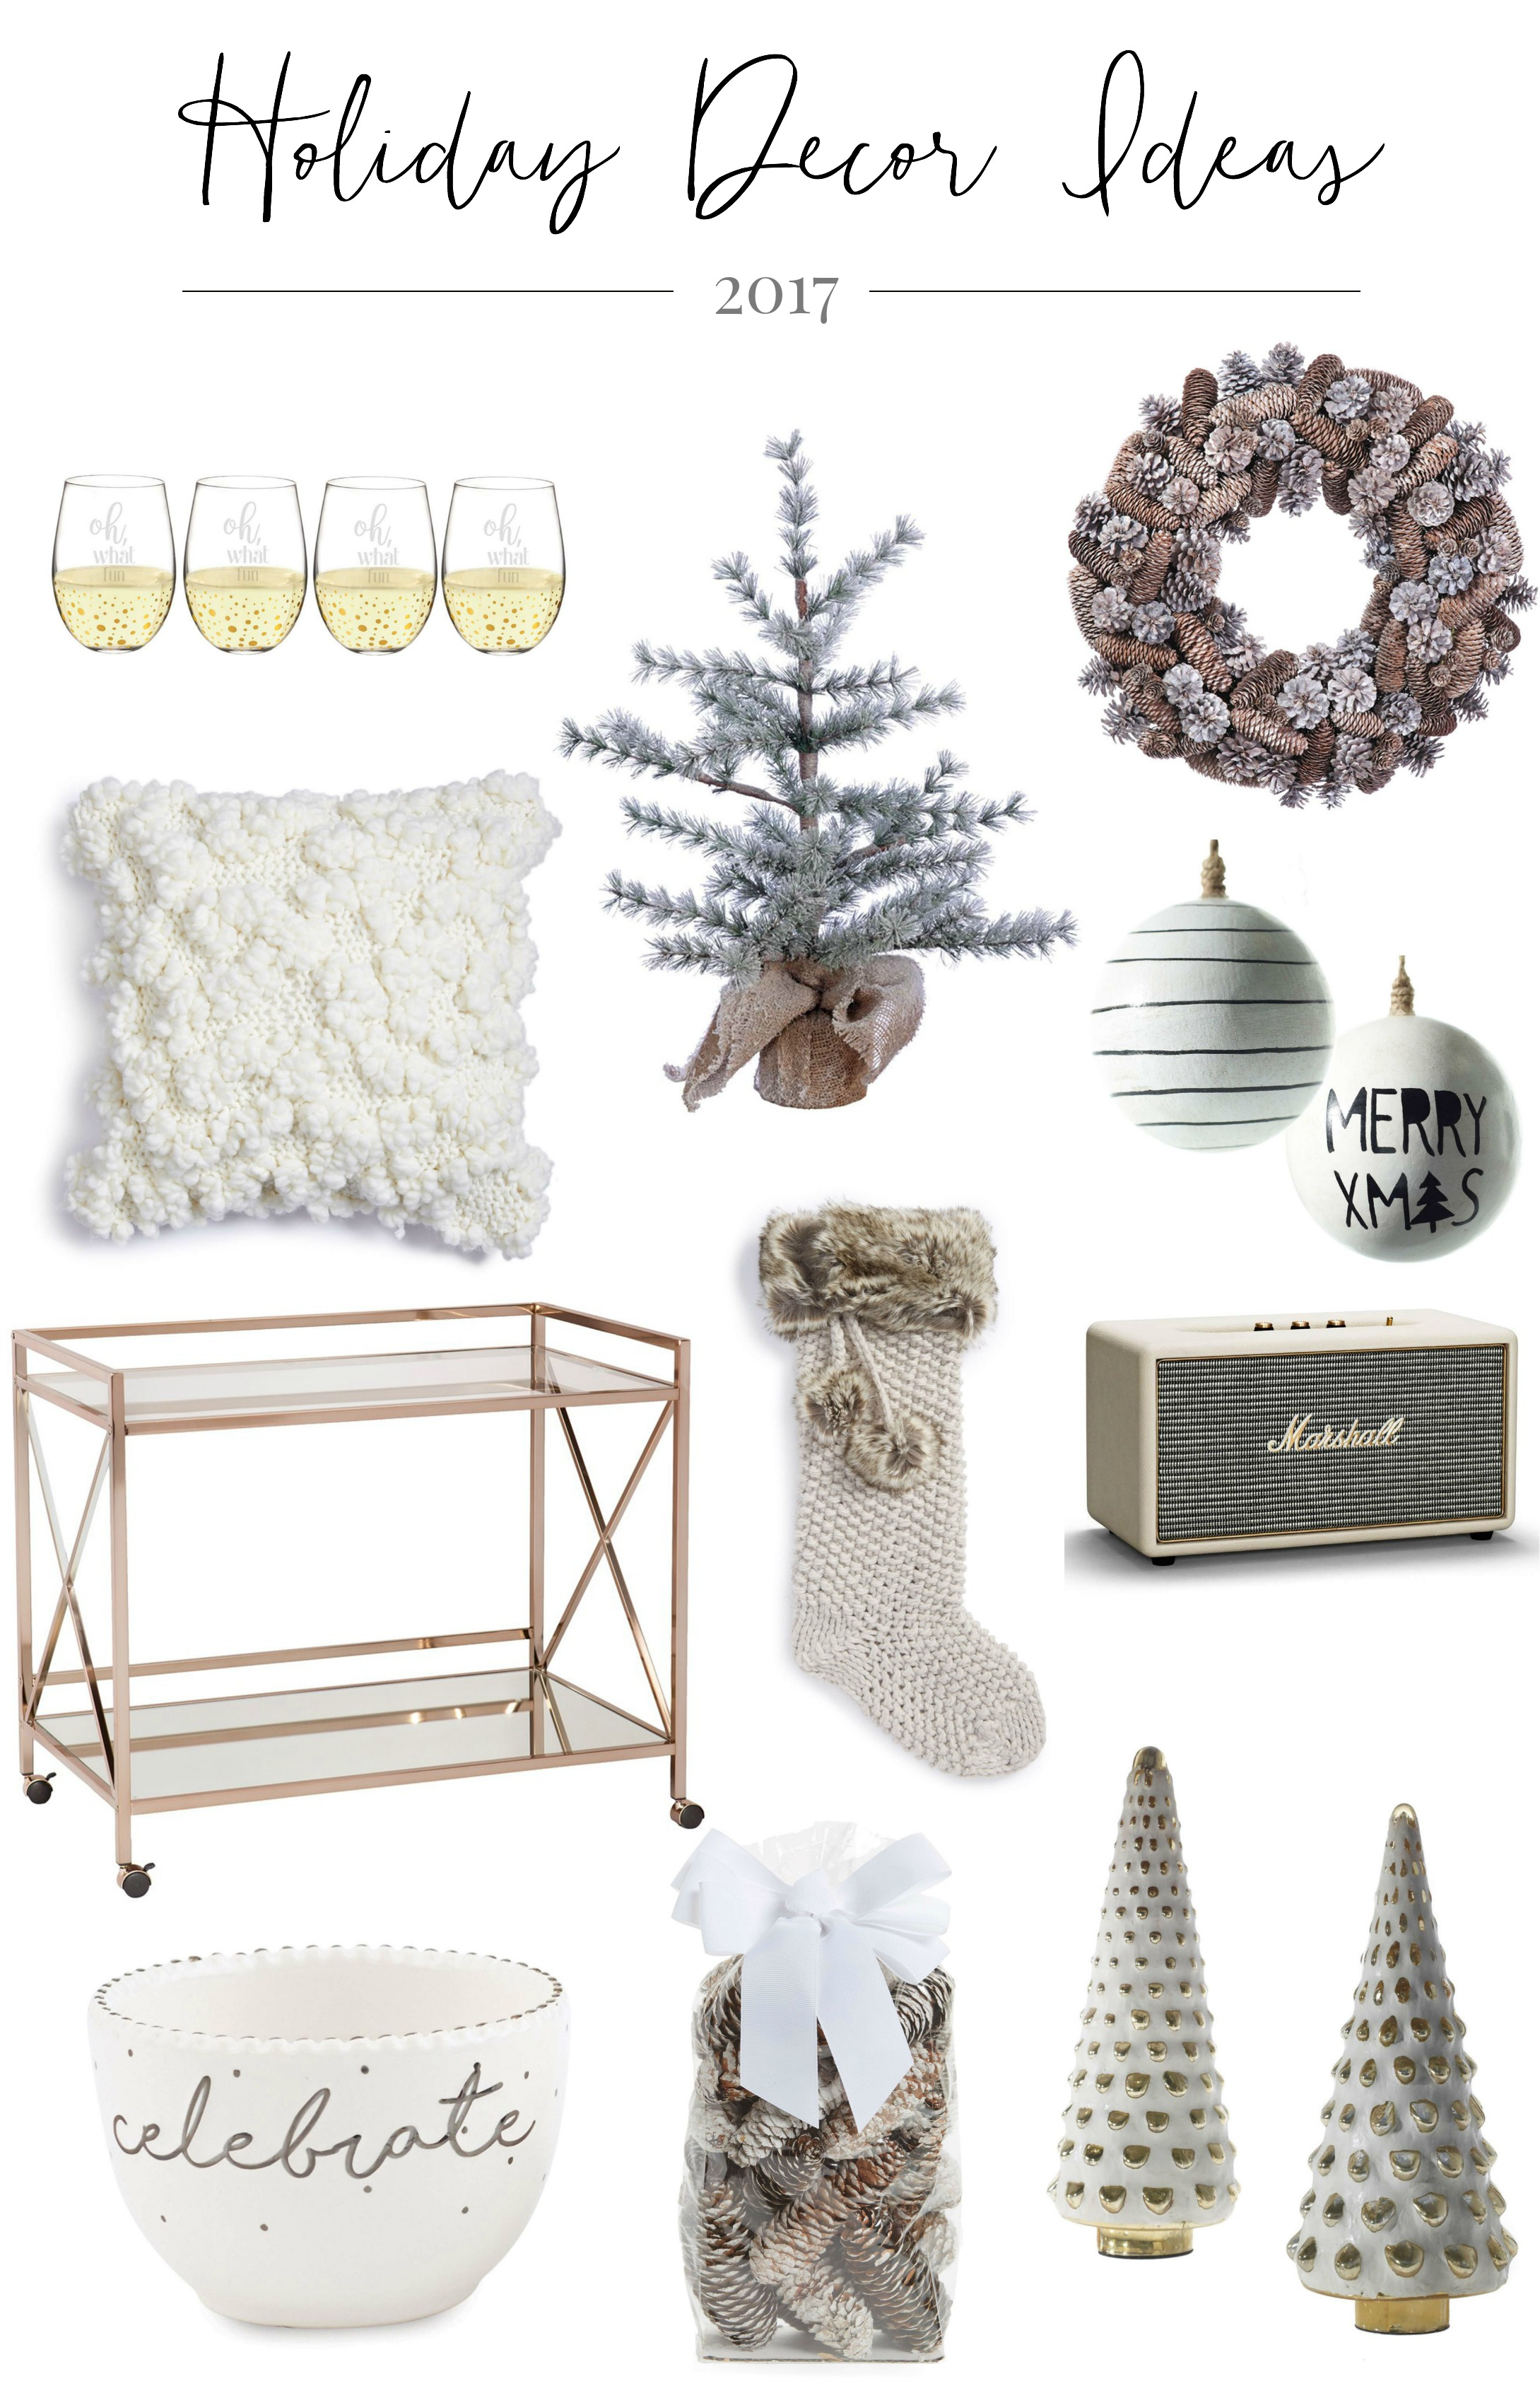 Christmas decorating   Oh what fun wine glasses   Mini burlap wrapped pine tree   Pinecone wreath   Knit Pillow   Merry XMAS wooden ball ornament   Bar cart   Knit faux fur stocking   Bluetooth speaker   Celebrate dip cup   Pinecone Potpourri   Glass tree